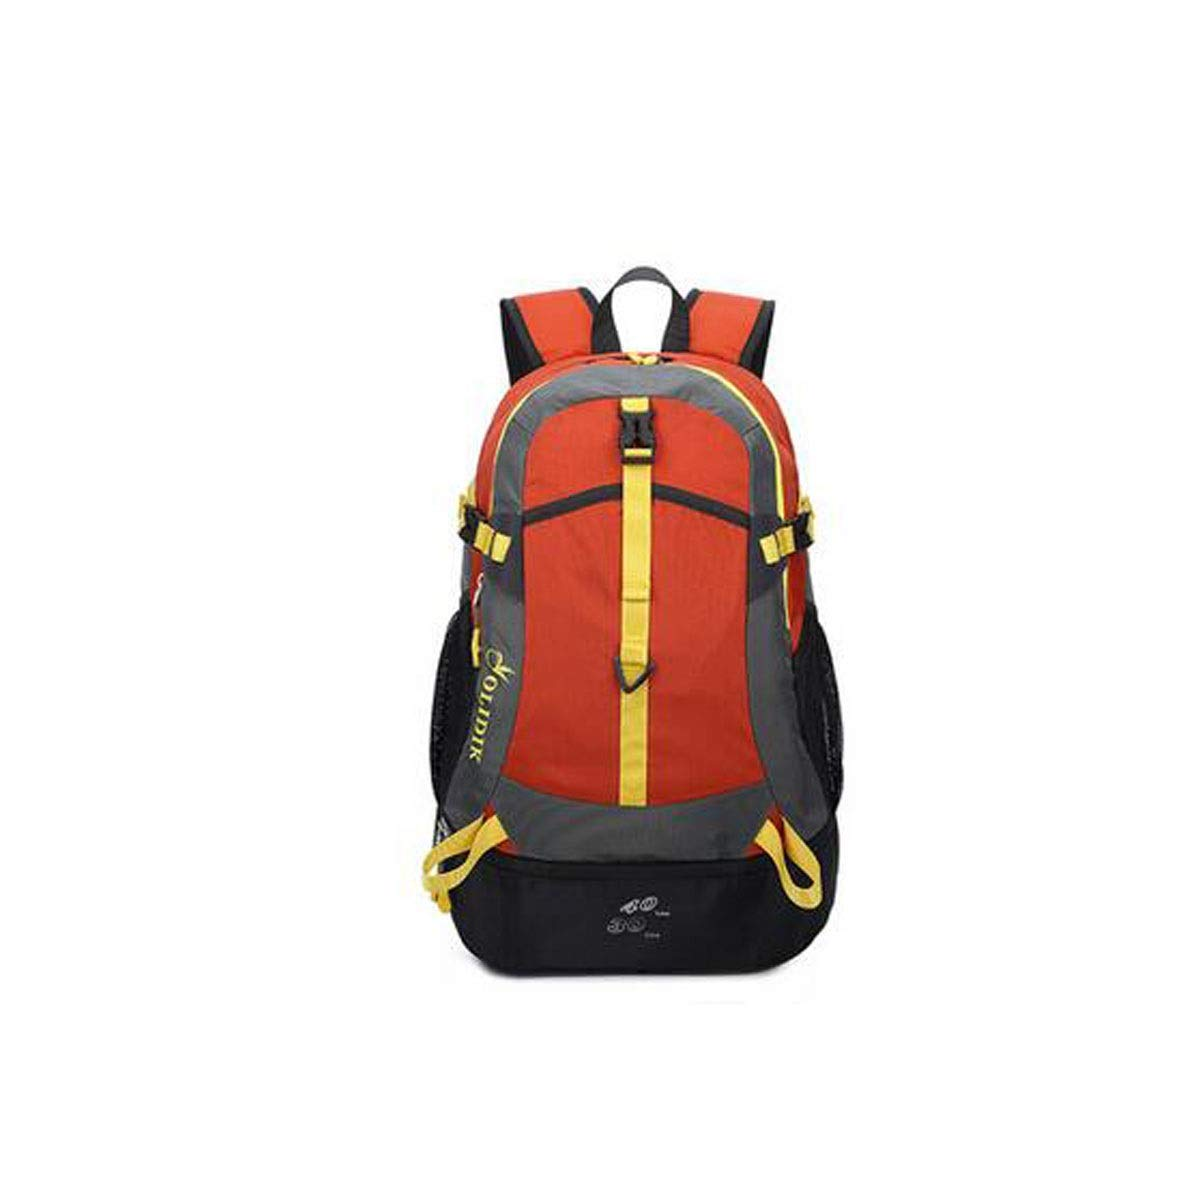 Chenjinxiang01 30-40L Stylish Casual Large-Capacity Backpack Outdoor Waterproof Ultra-Light Travel Backpack Color : Large Orange